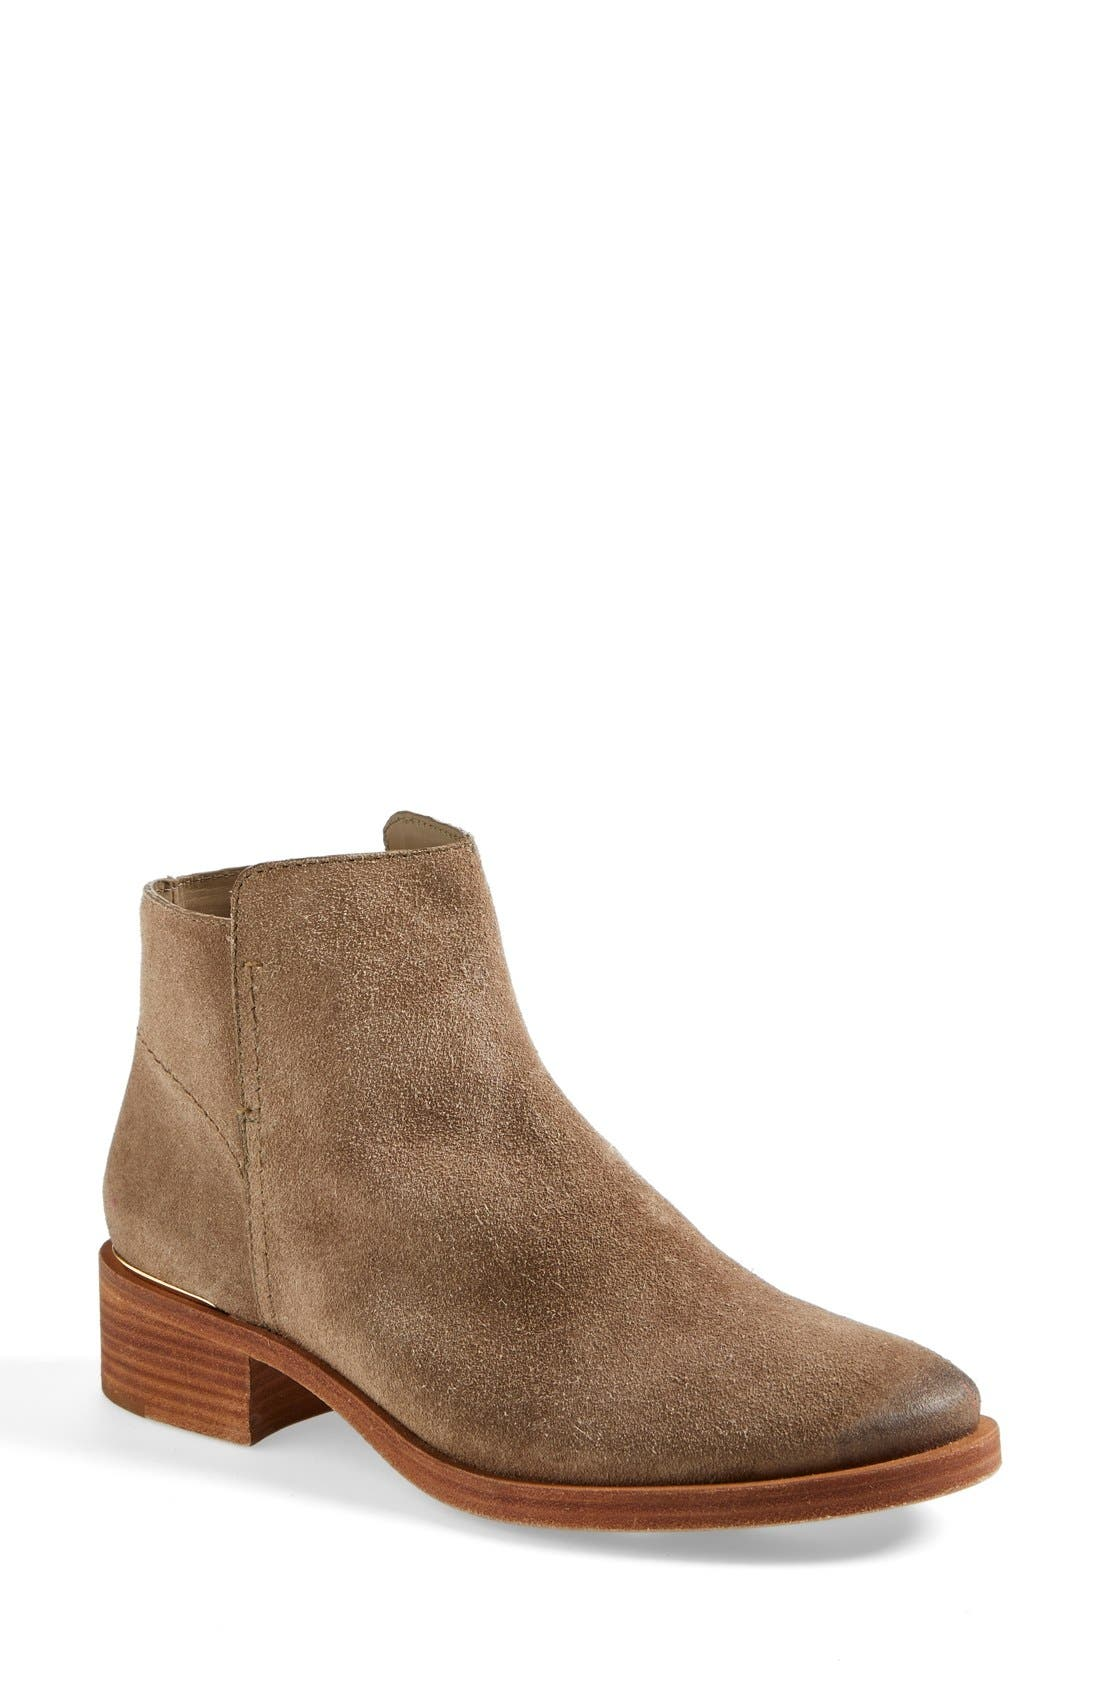 'Riley' Suede Ankle Boot, Main, color, 217